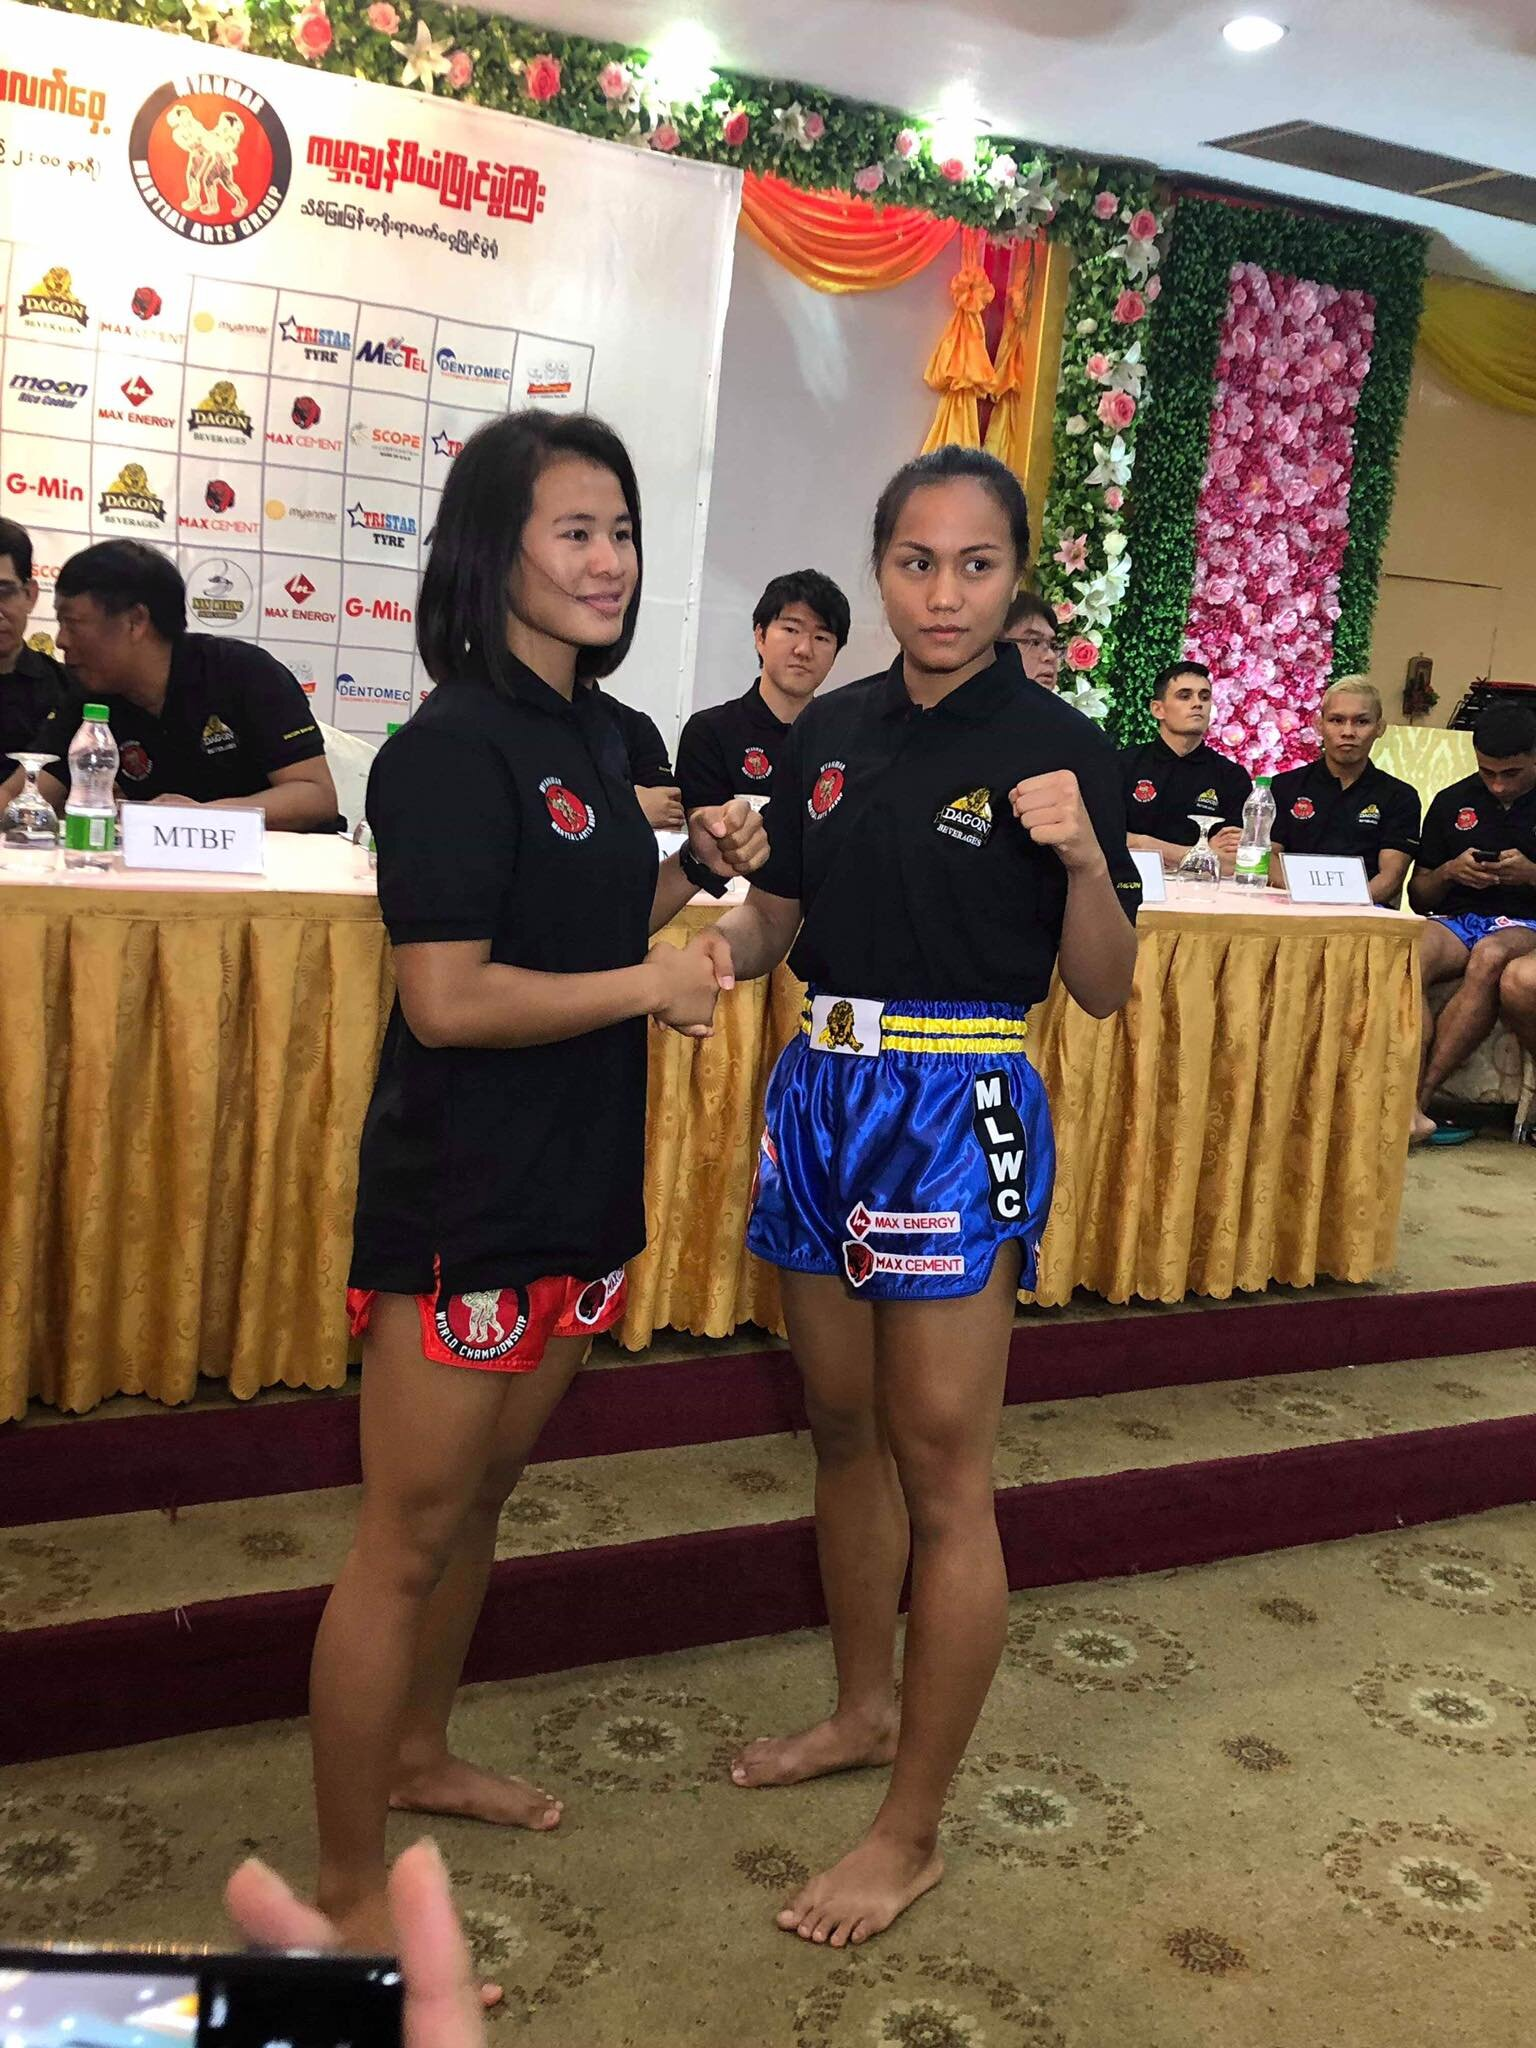 Veronika and Sawsing Sor.Sopit at a press conference prior to the 4th Myanmar Lethwei World Championship on August 18th. Photo courtesy of  Myanmar Lethwei Collection .